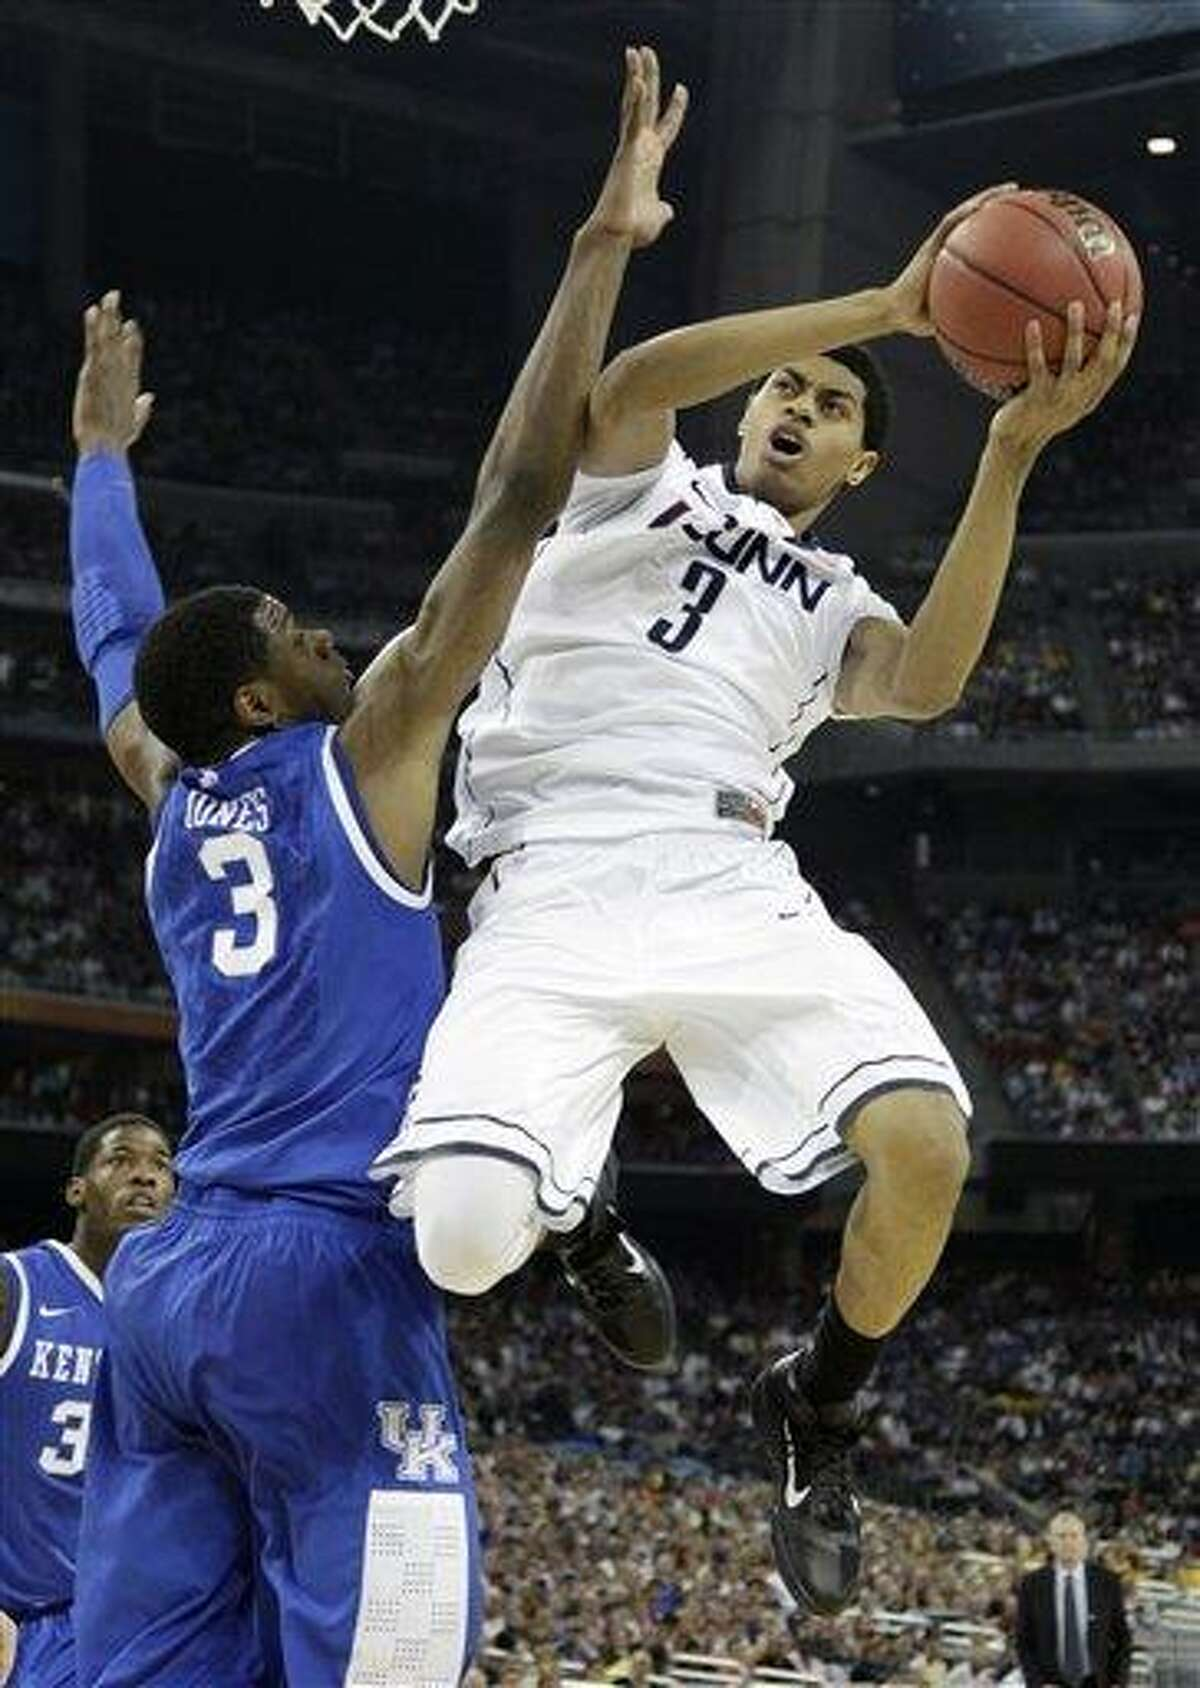 FIEL - In this April 2, 2011 file photo, Connecticut's Jeremy Lamb, right, looks to shoot over Kentucky's Terrence Jones, left, during the first half of a men's NCAA Final Four semifinal college basketball game, in Houston. Lamb was selected to The Associated Press' preseason All-American team this season. (AP Photo/David J. Phillip, File)